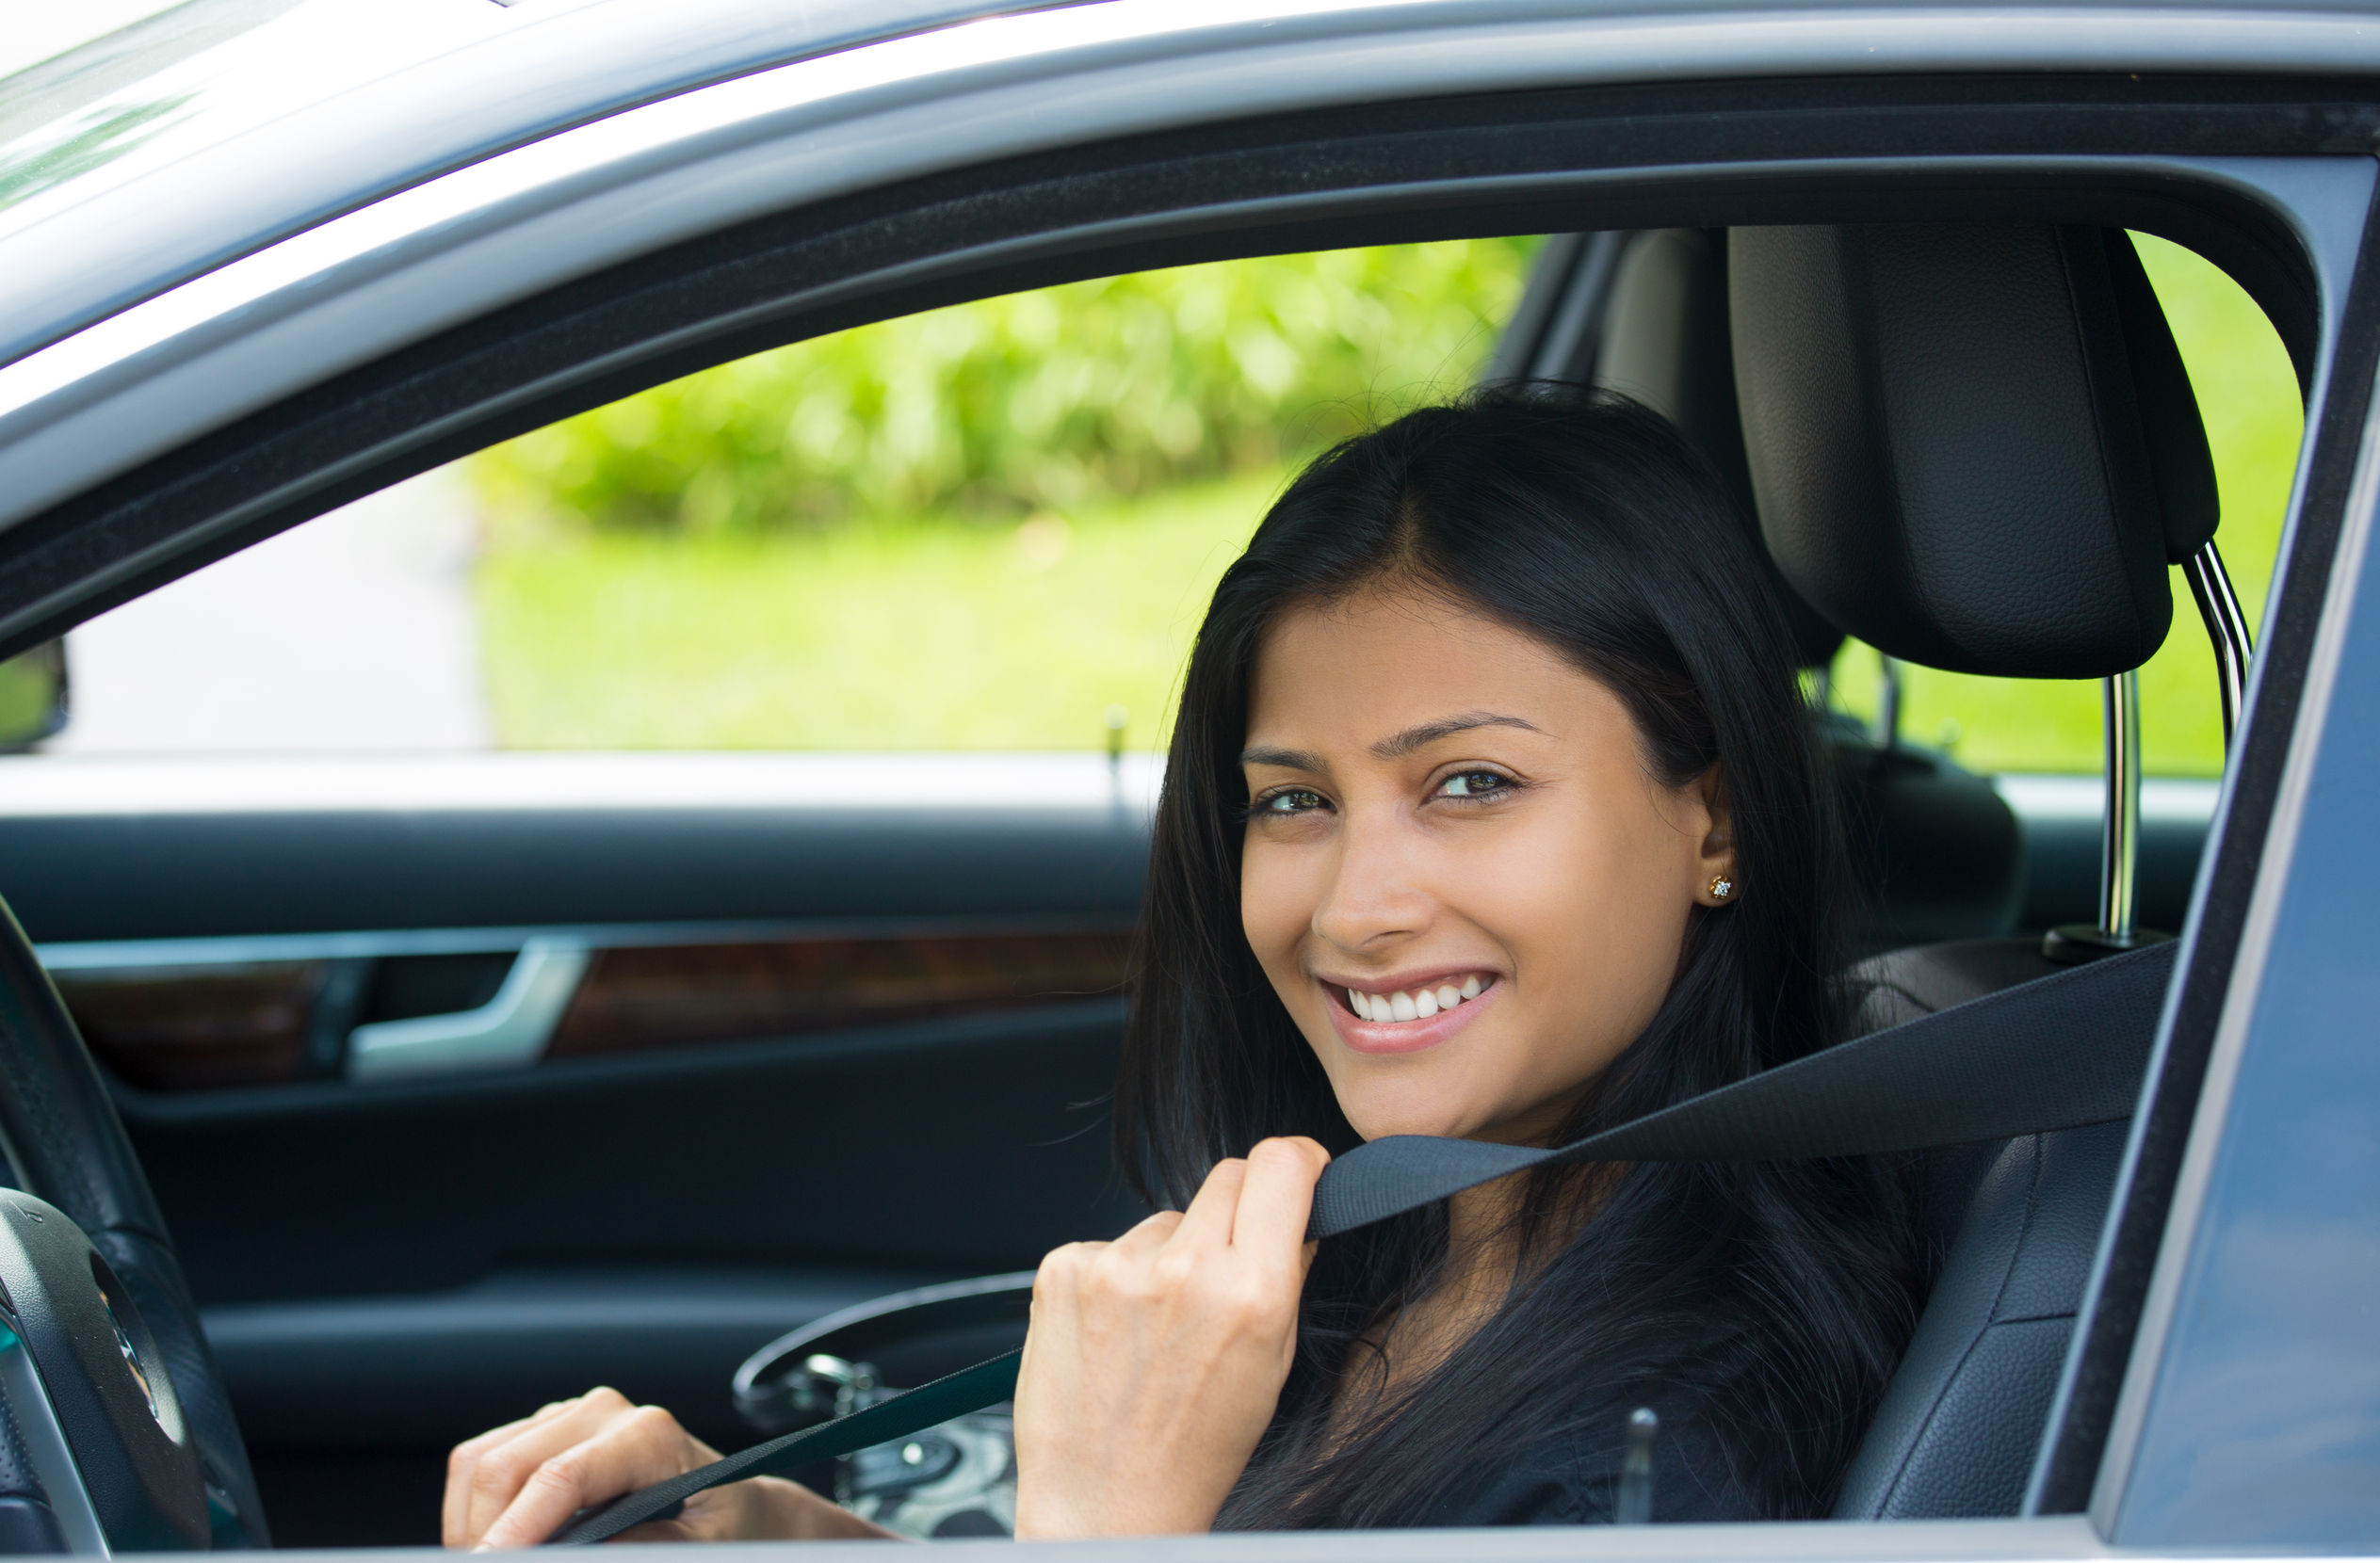 New products even a women can install in their car to end their car problem will make you smile you found them too!